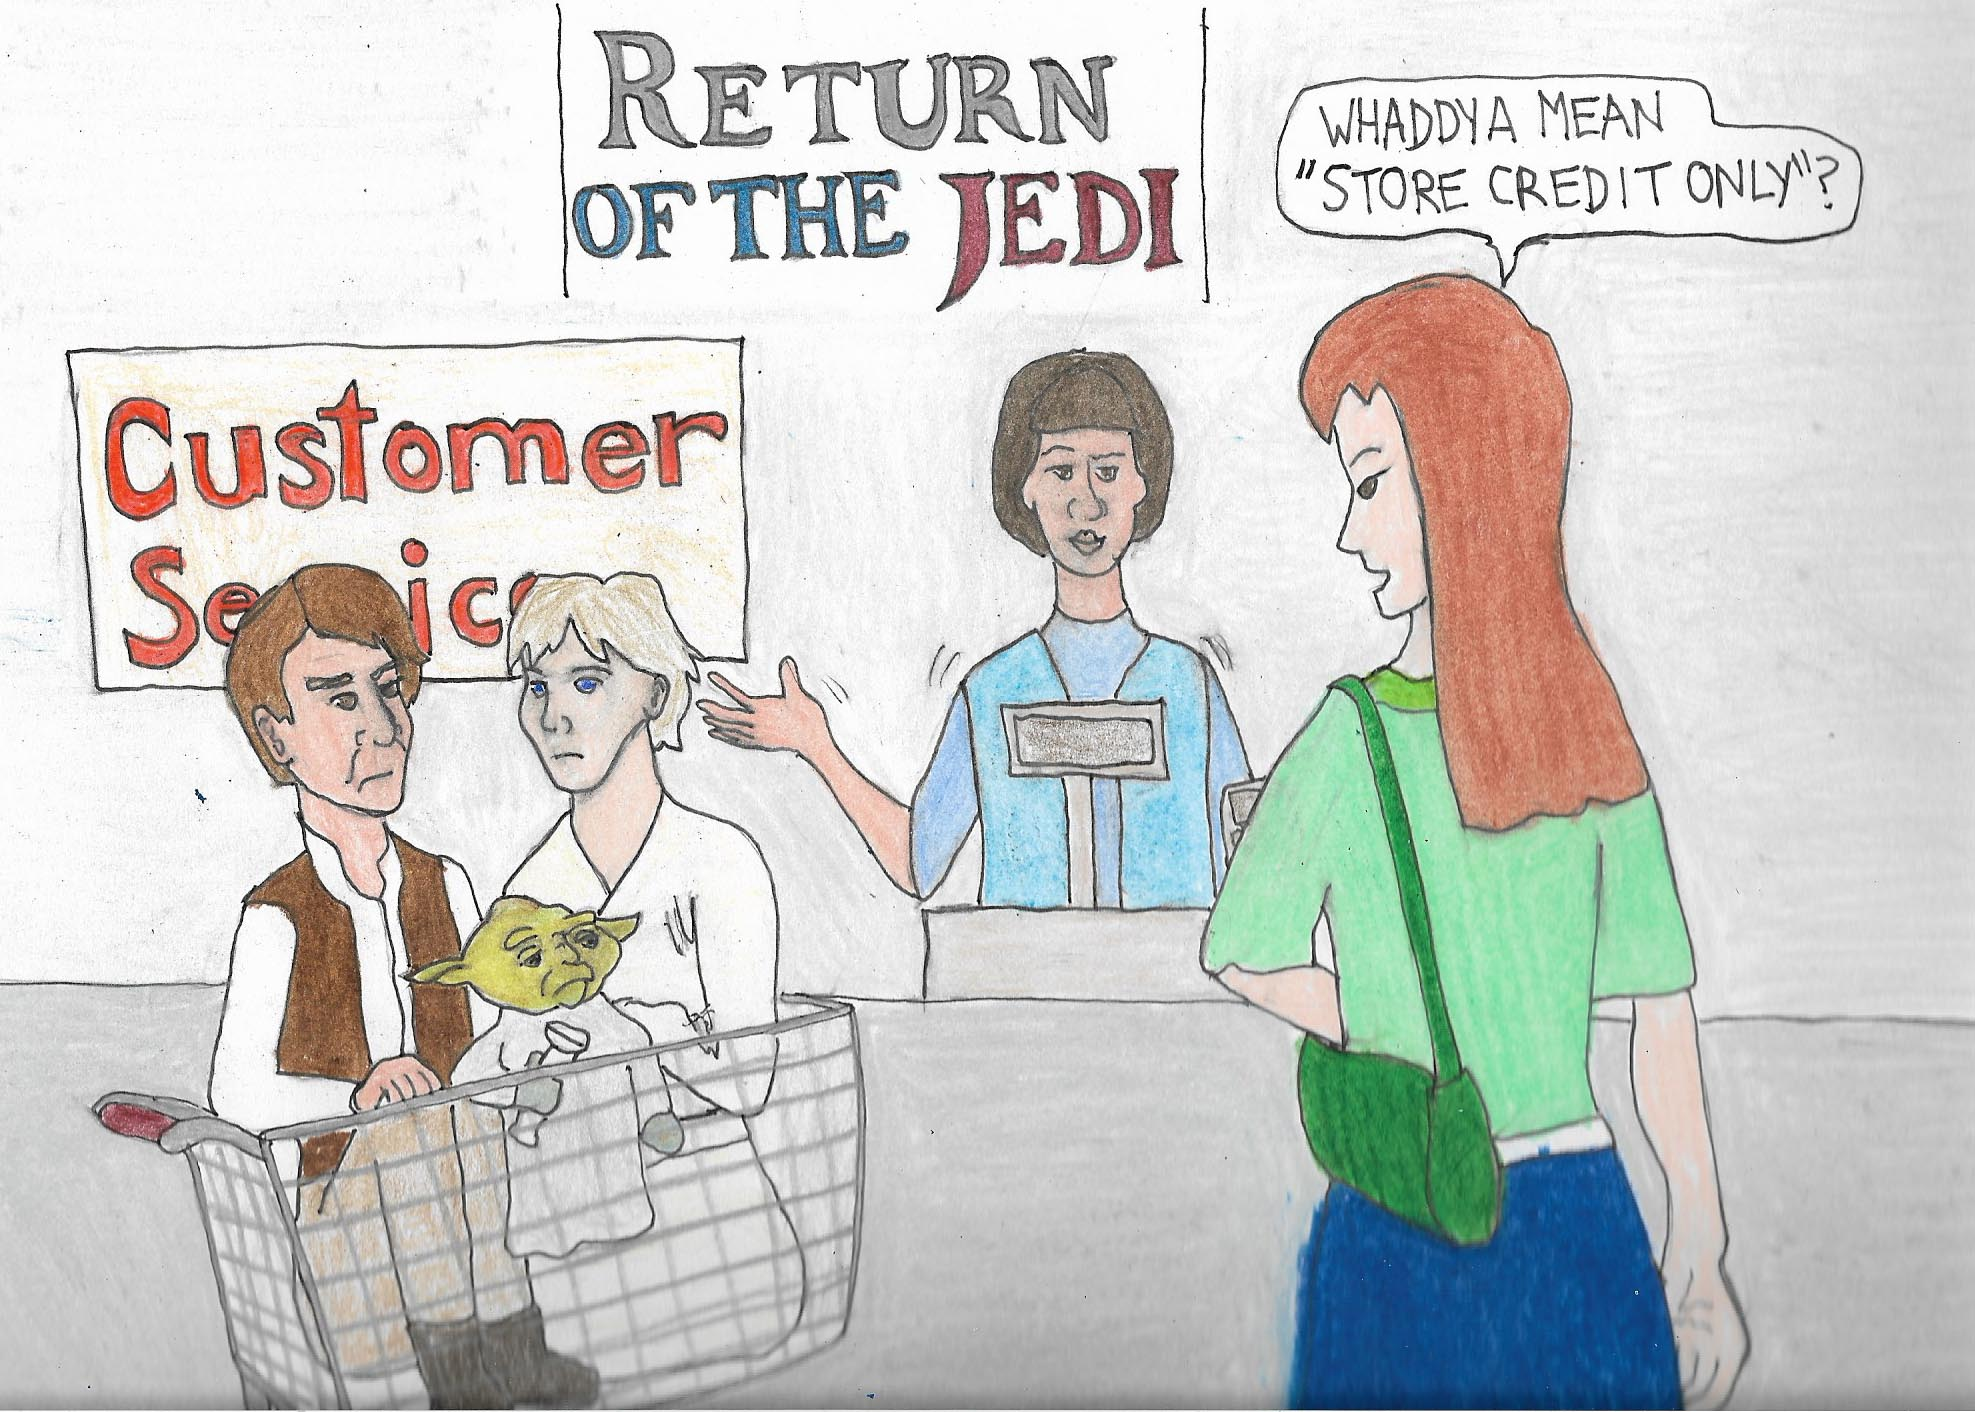 Reurn of the Jedi